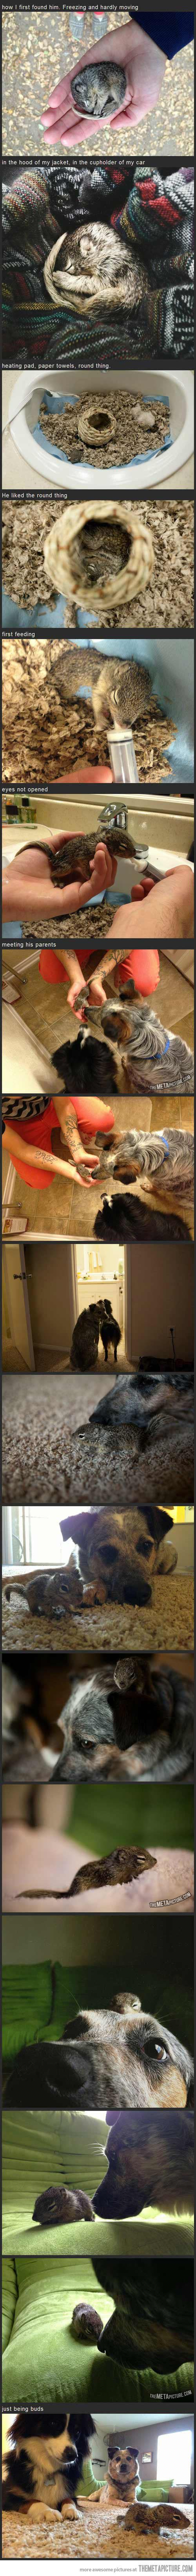 The best images about this is why i love animals more than ppl